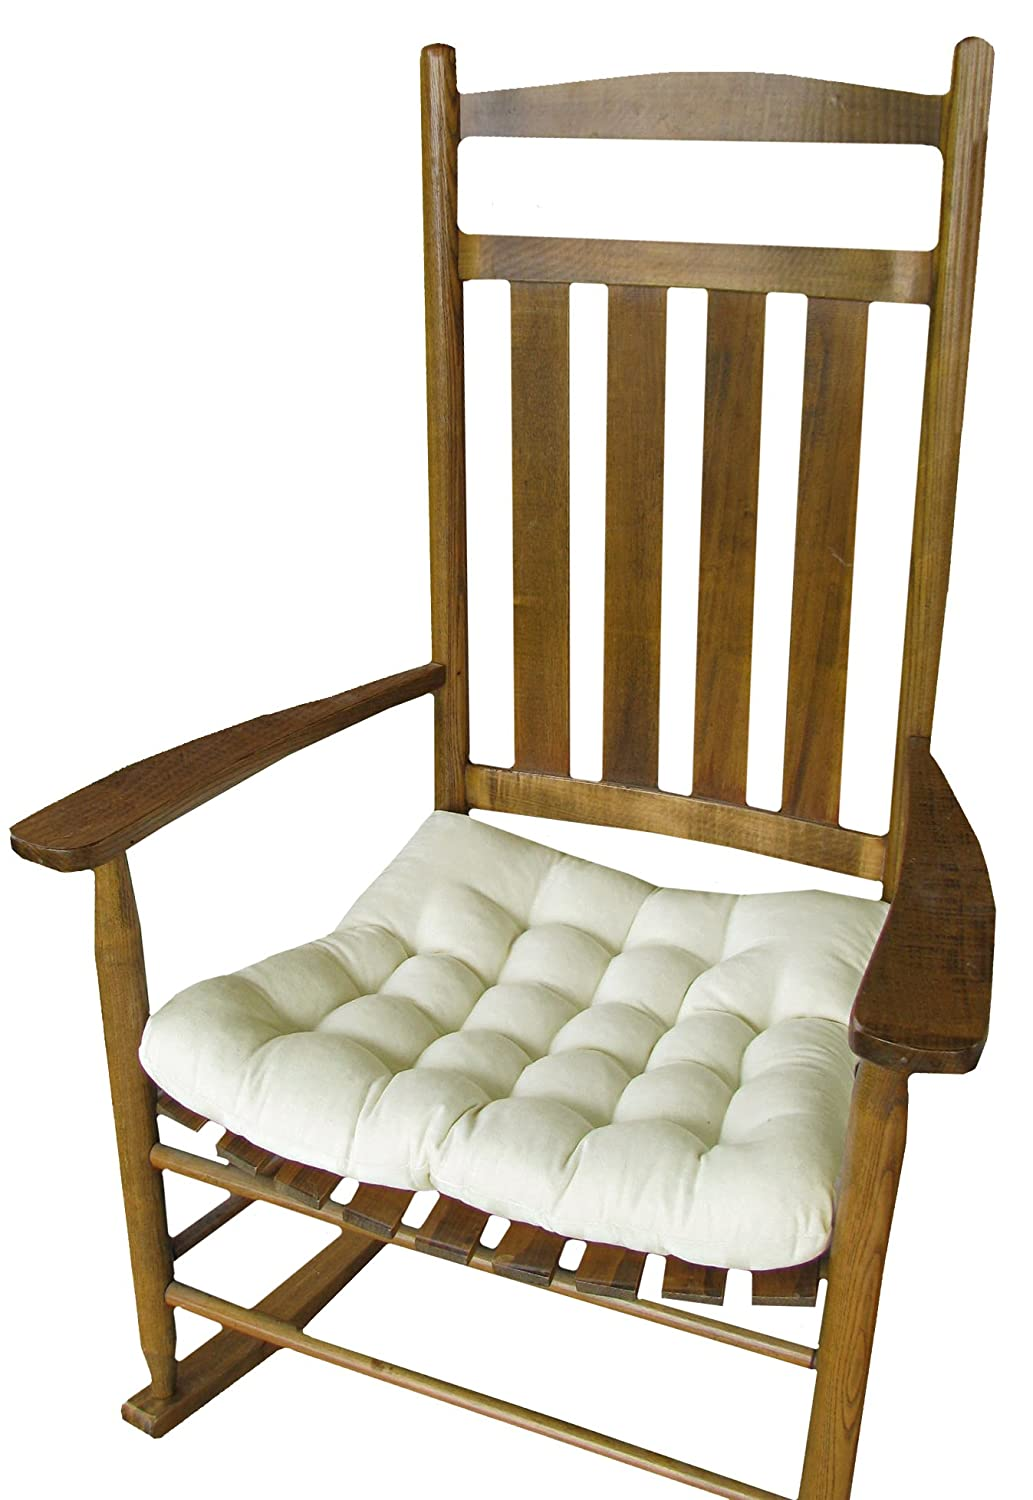 Amazon.com: Rocking Chair Seat Cushion w/ Ties - Natural ...